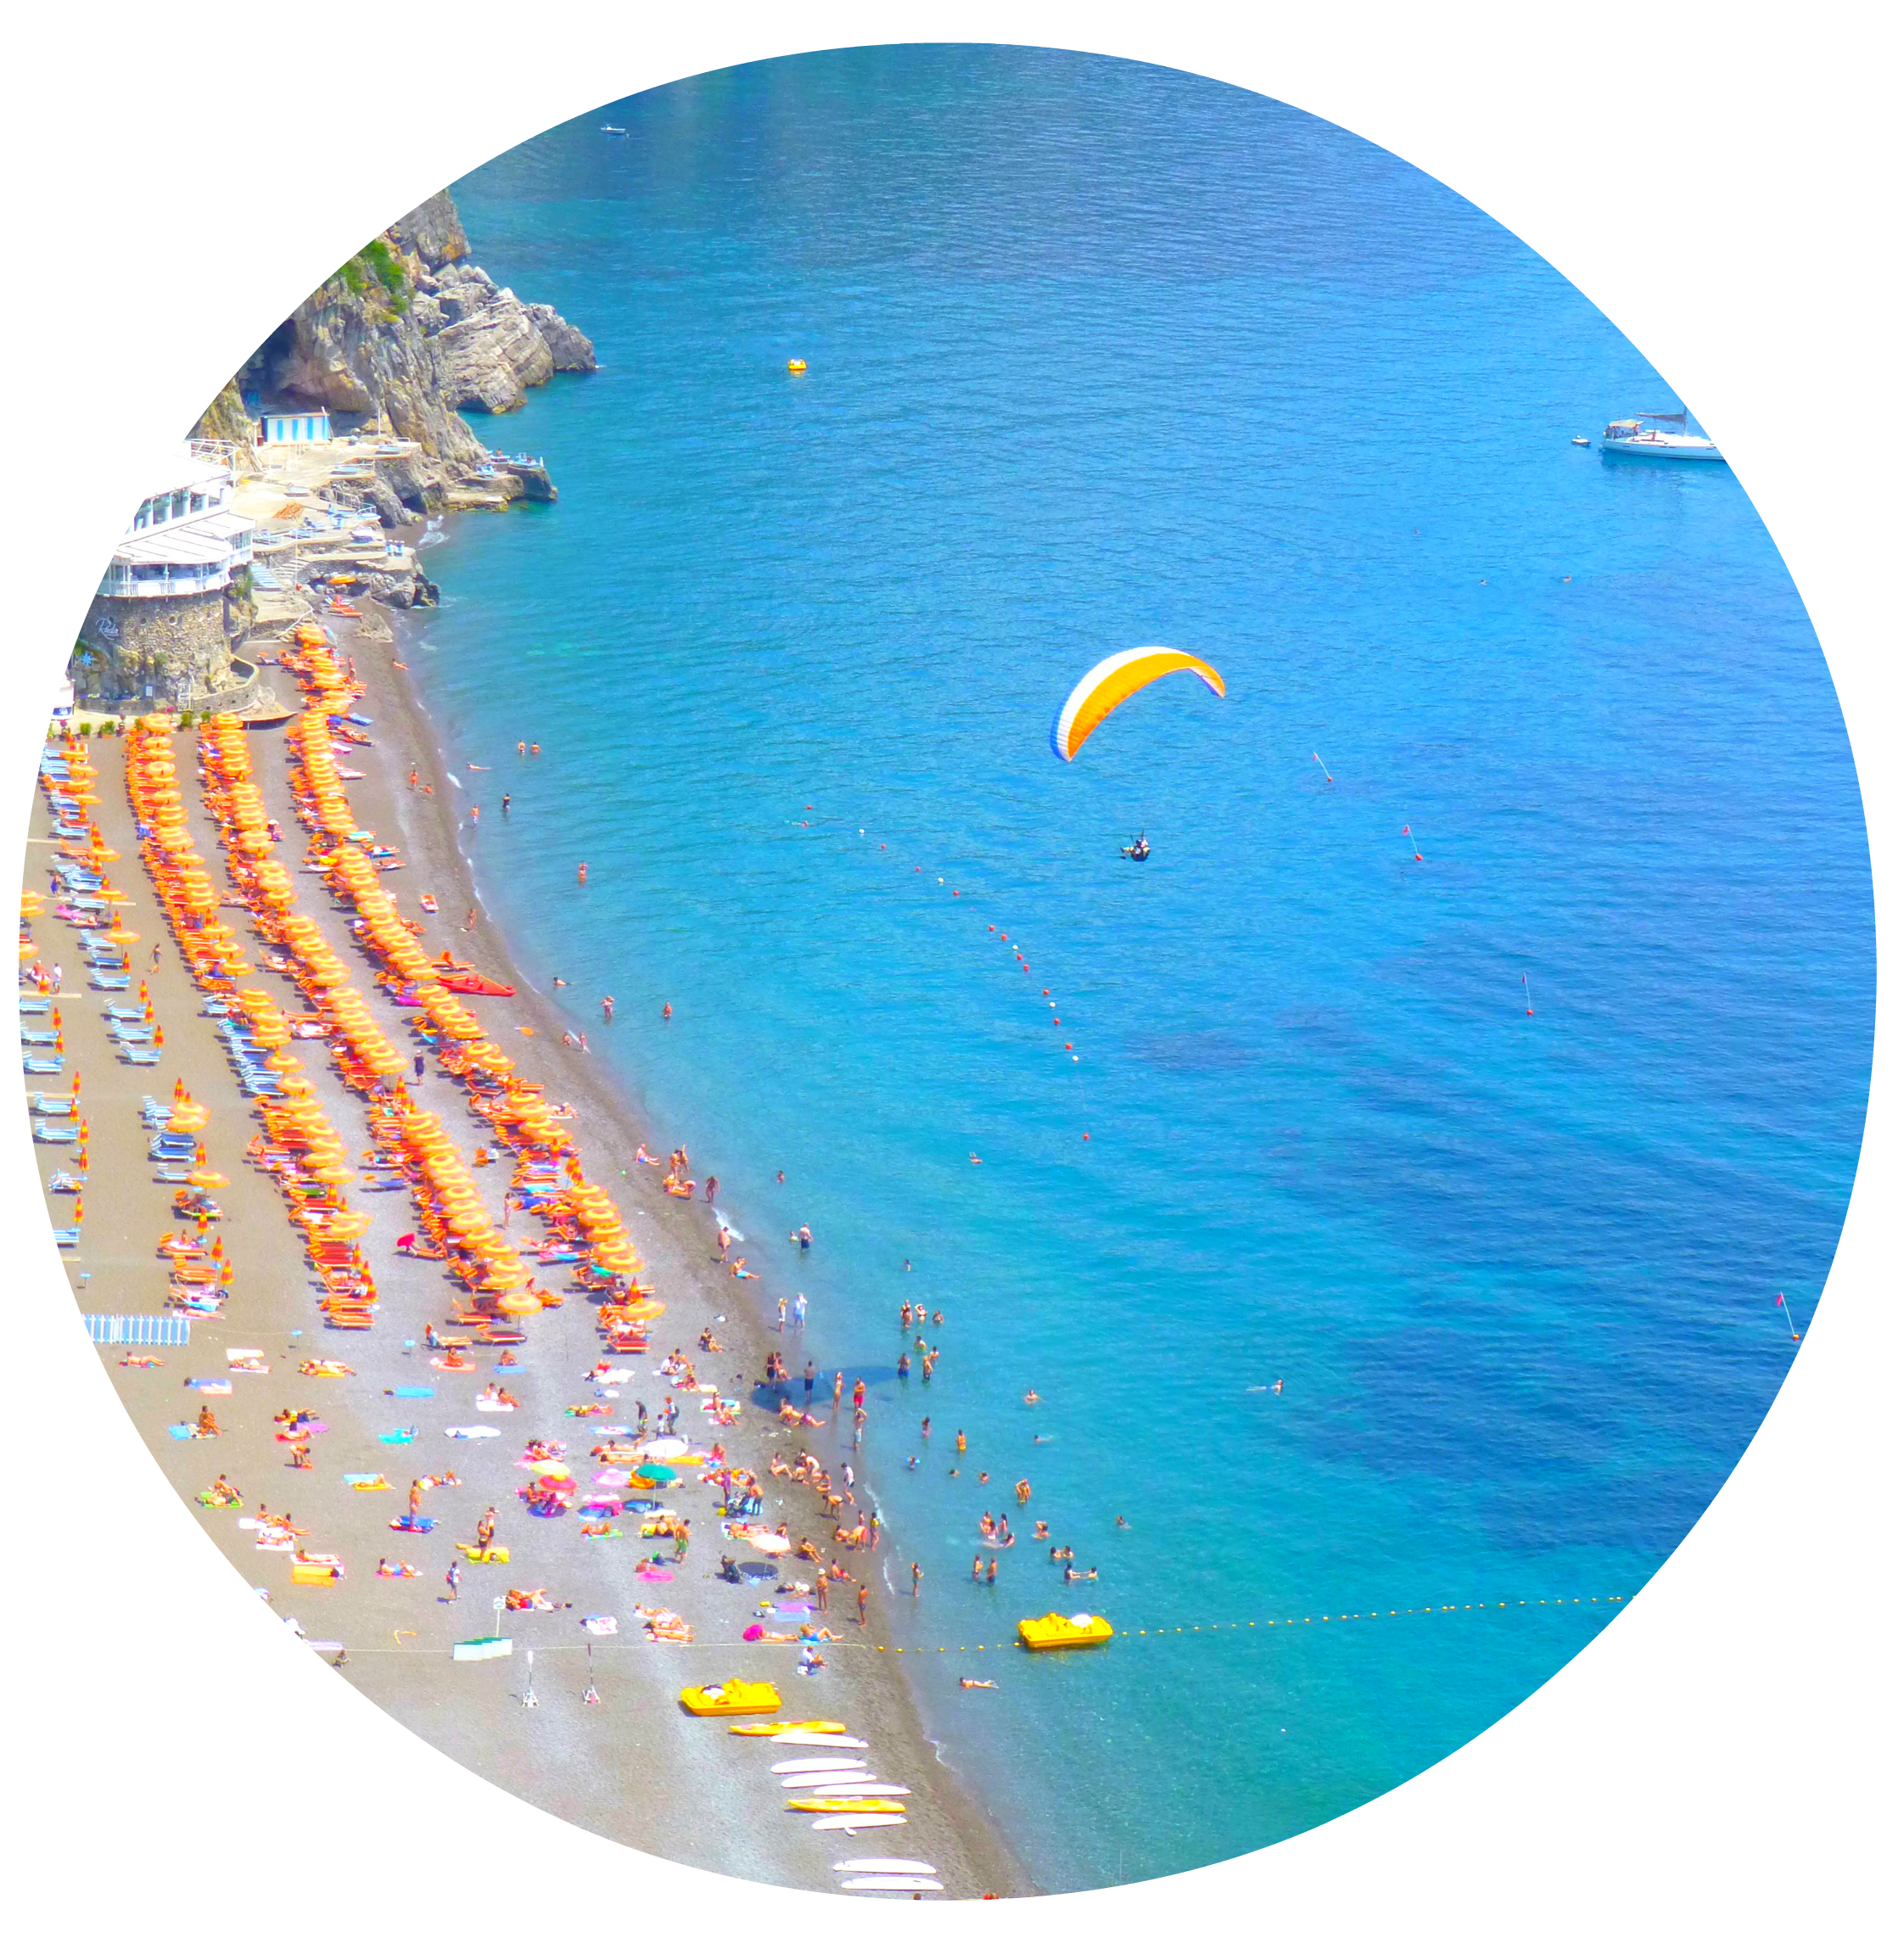 Someone paragliding over Positano beach, looking from Caffe Positano